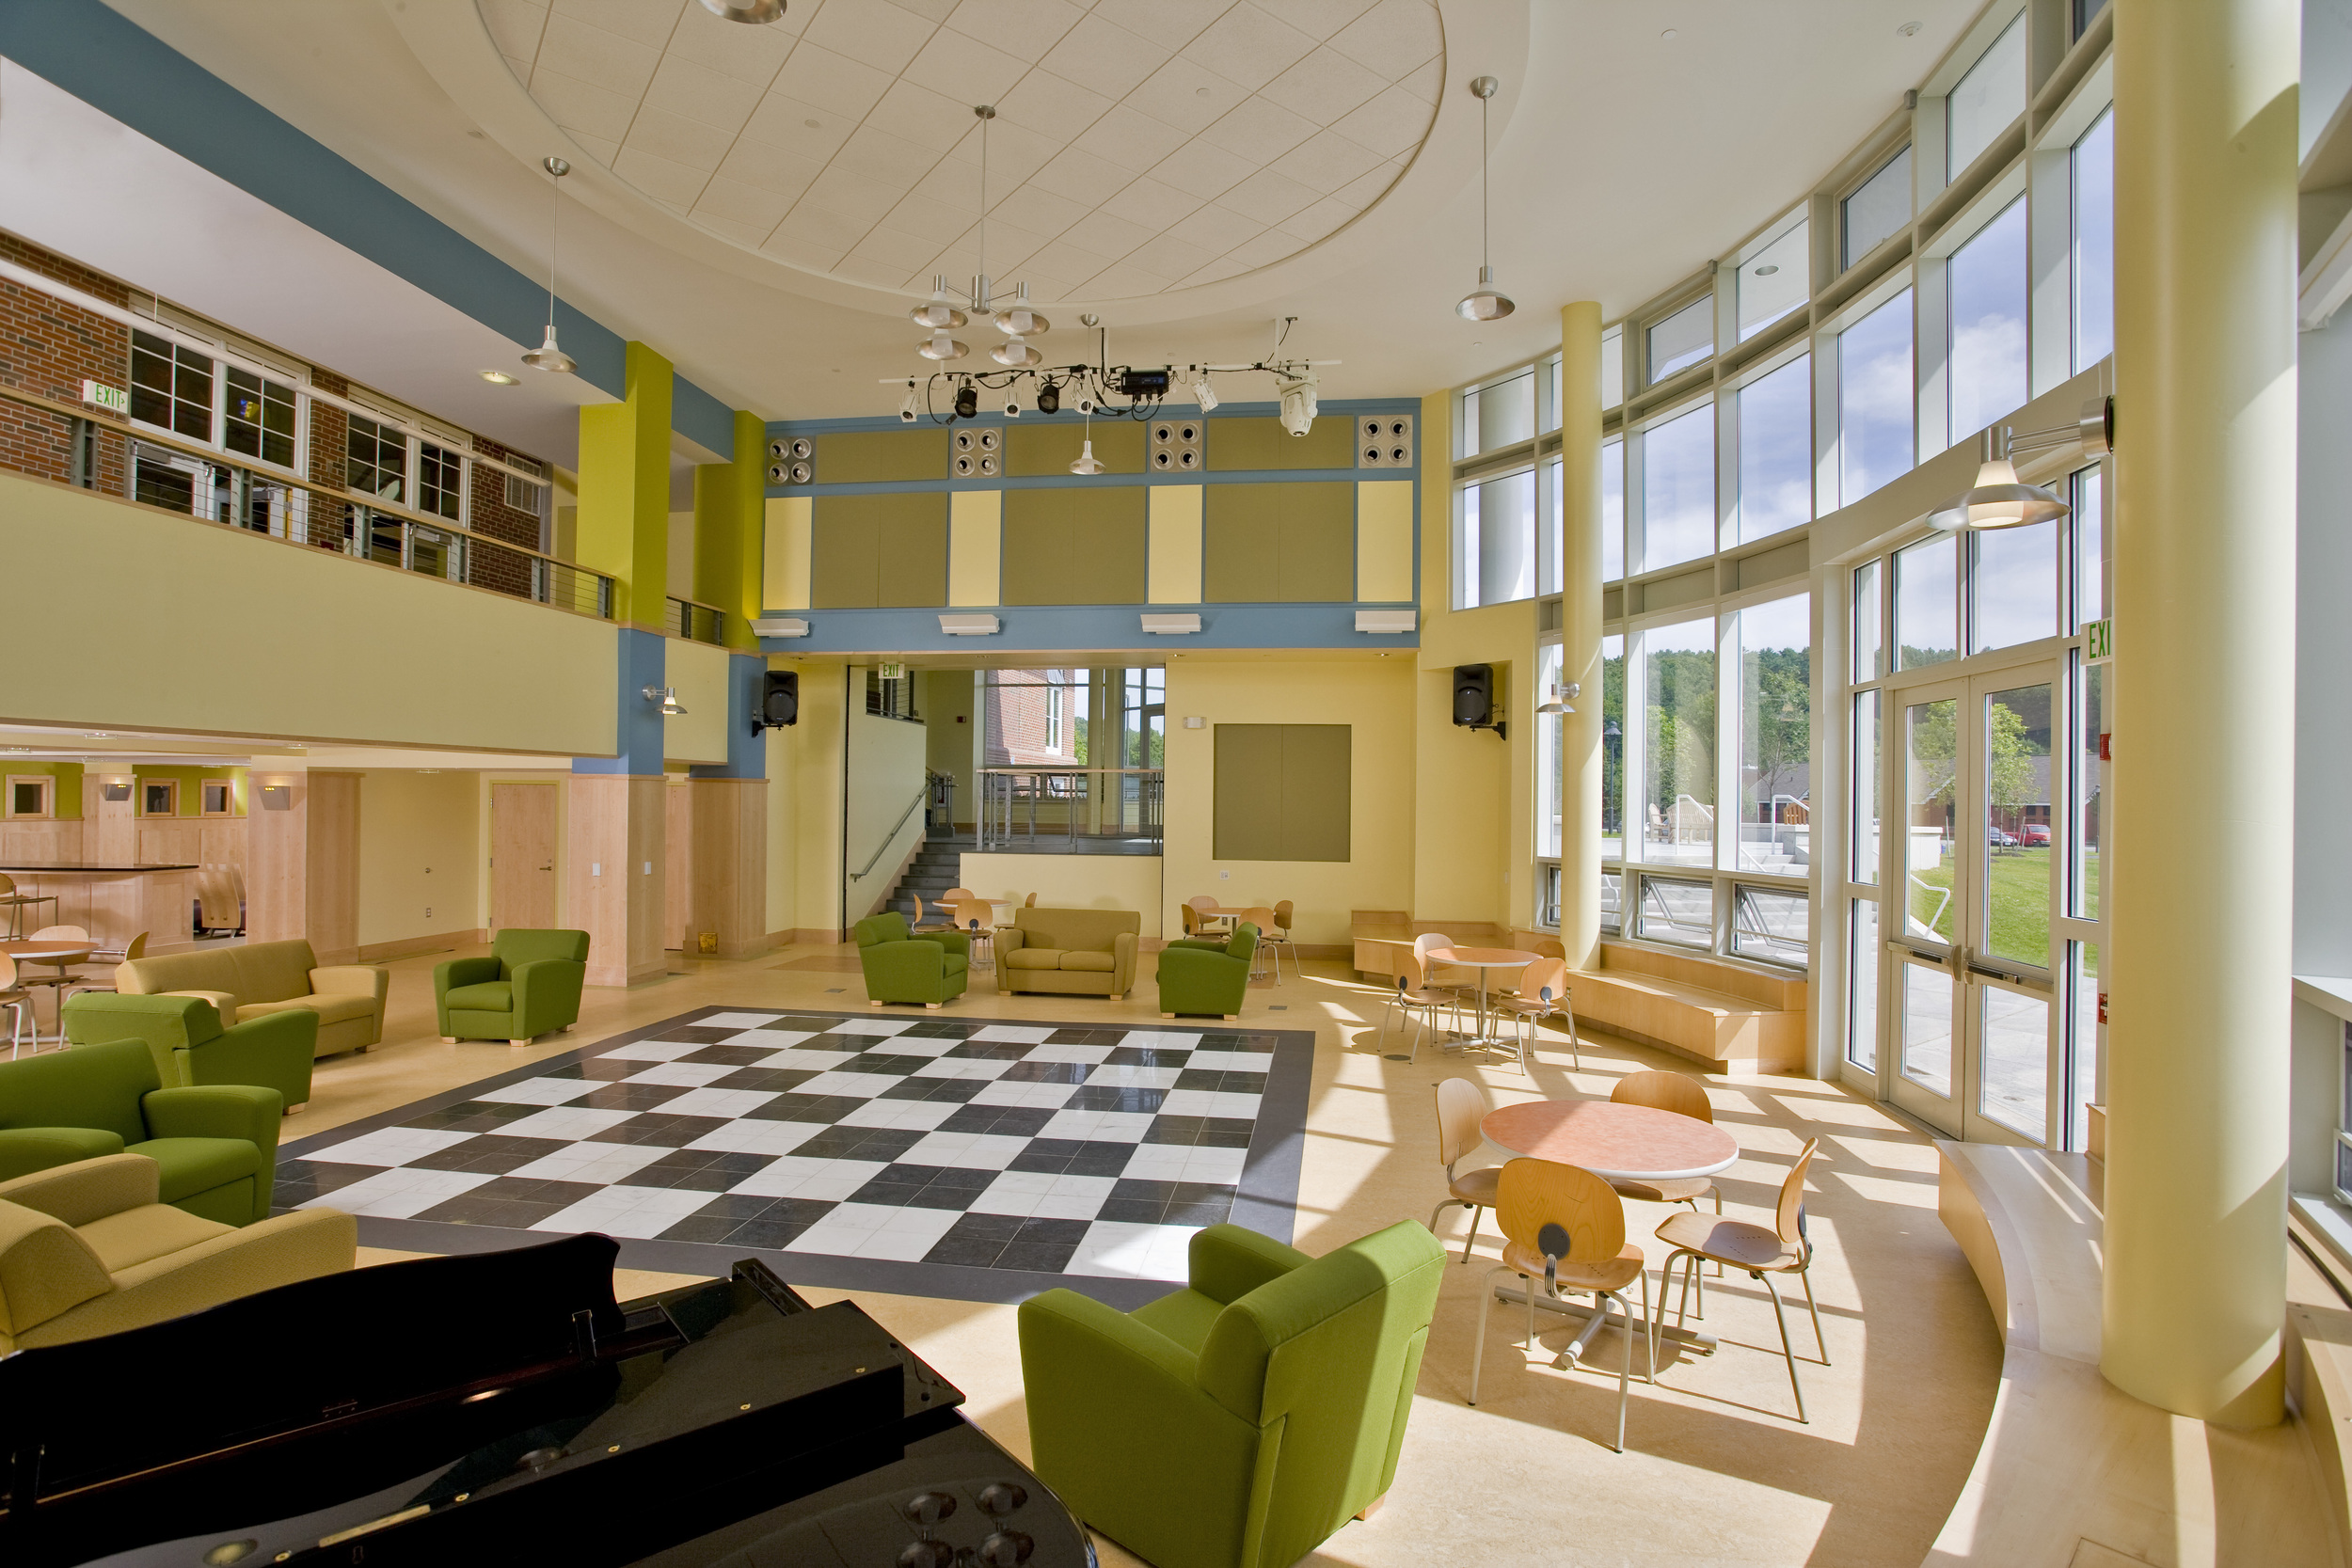 """The connections for day/boarding, parent drop off / pick up, athletic / academic / arts intersection…..informal and formal – genius!    In essence, this space is fantastic for the school and your design captured the vision and expectations for this space better than I ever could have imagined.""   Mike Schafer, Head of School Kimball Union Academy"